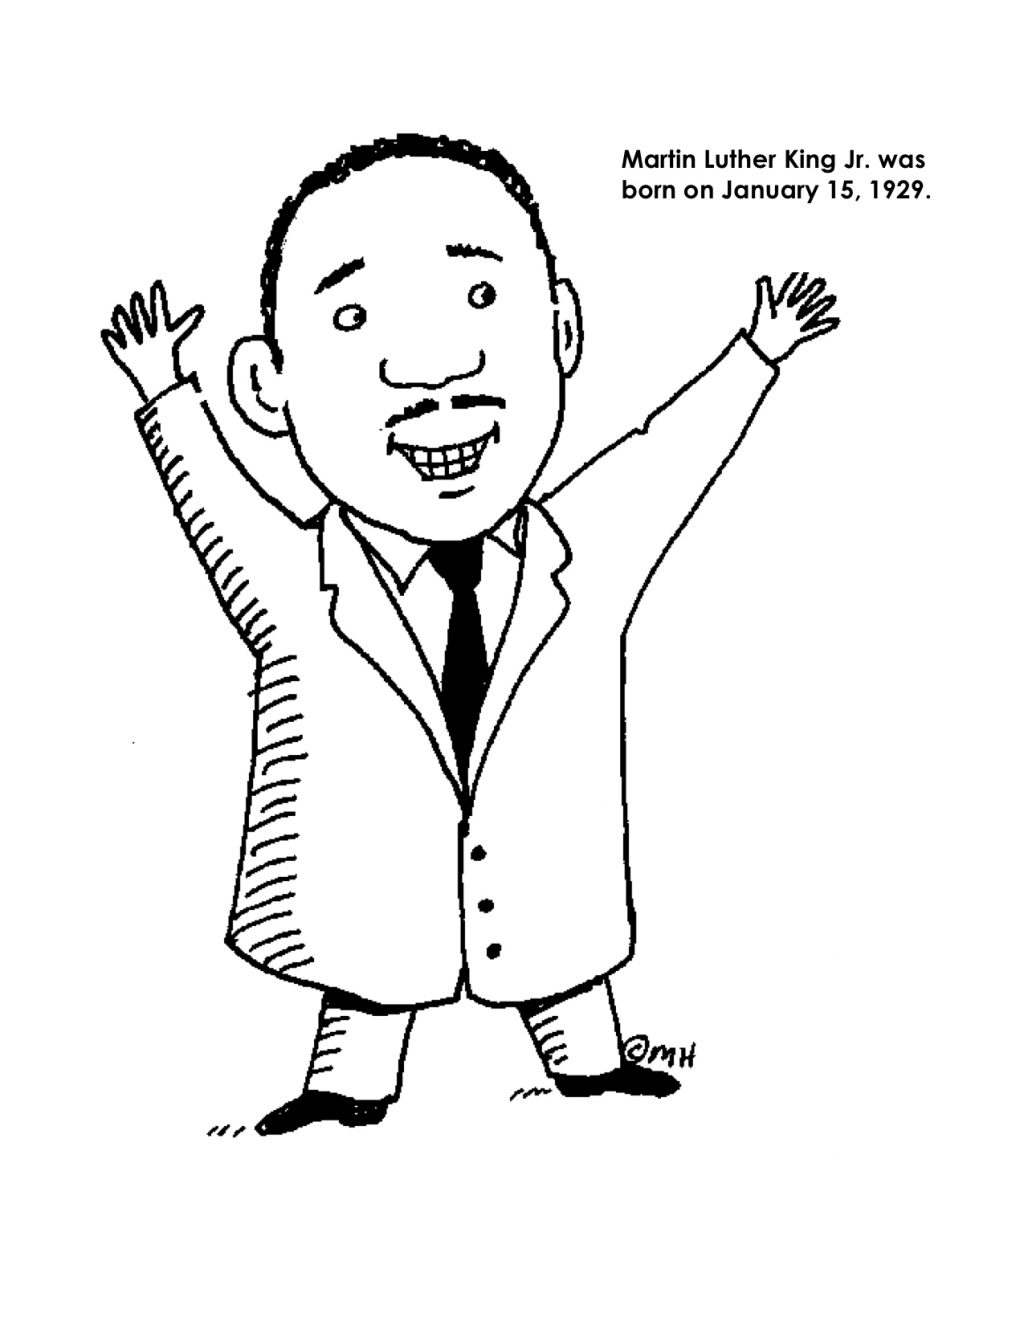 printable pictures of martin luther king martin luther king jr coloring pages and worksheets best king luther martin printable pictures of